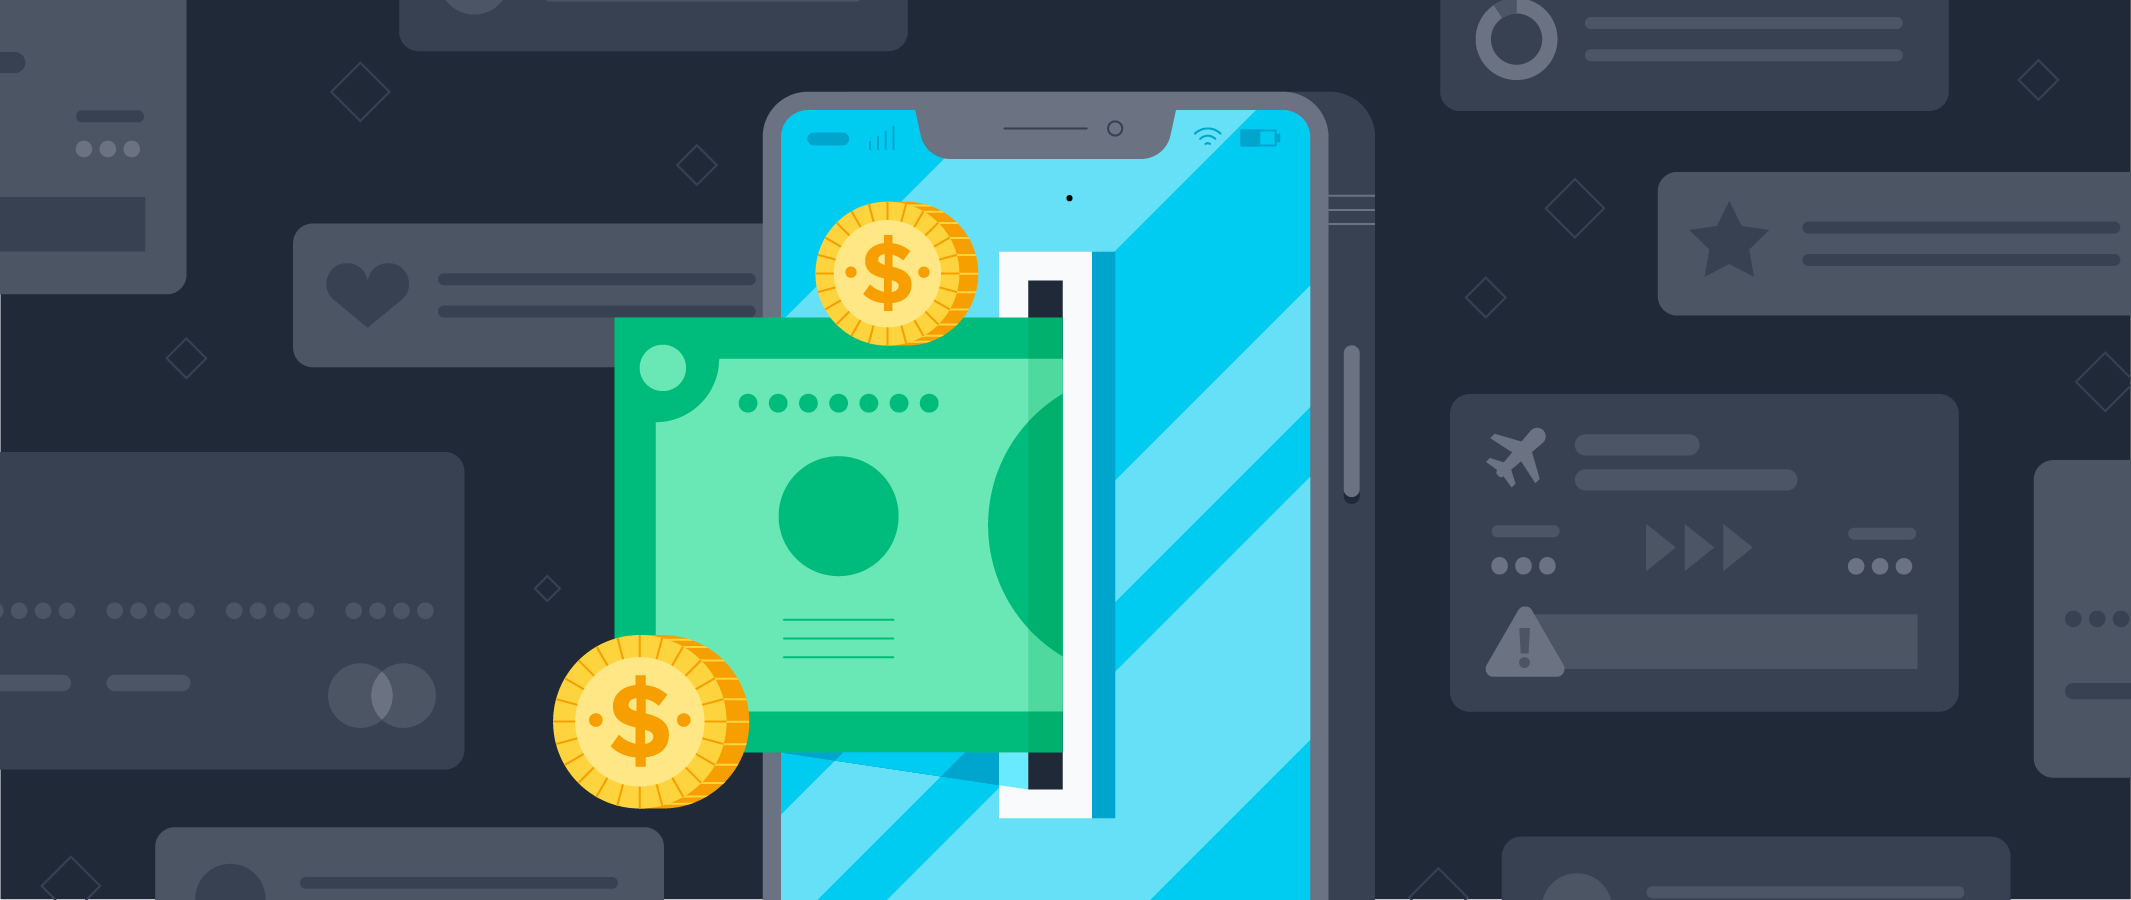 What Is Mobile Wallet Marketing? More Than Just a Digital Payment Approach